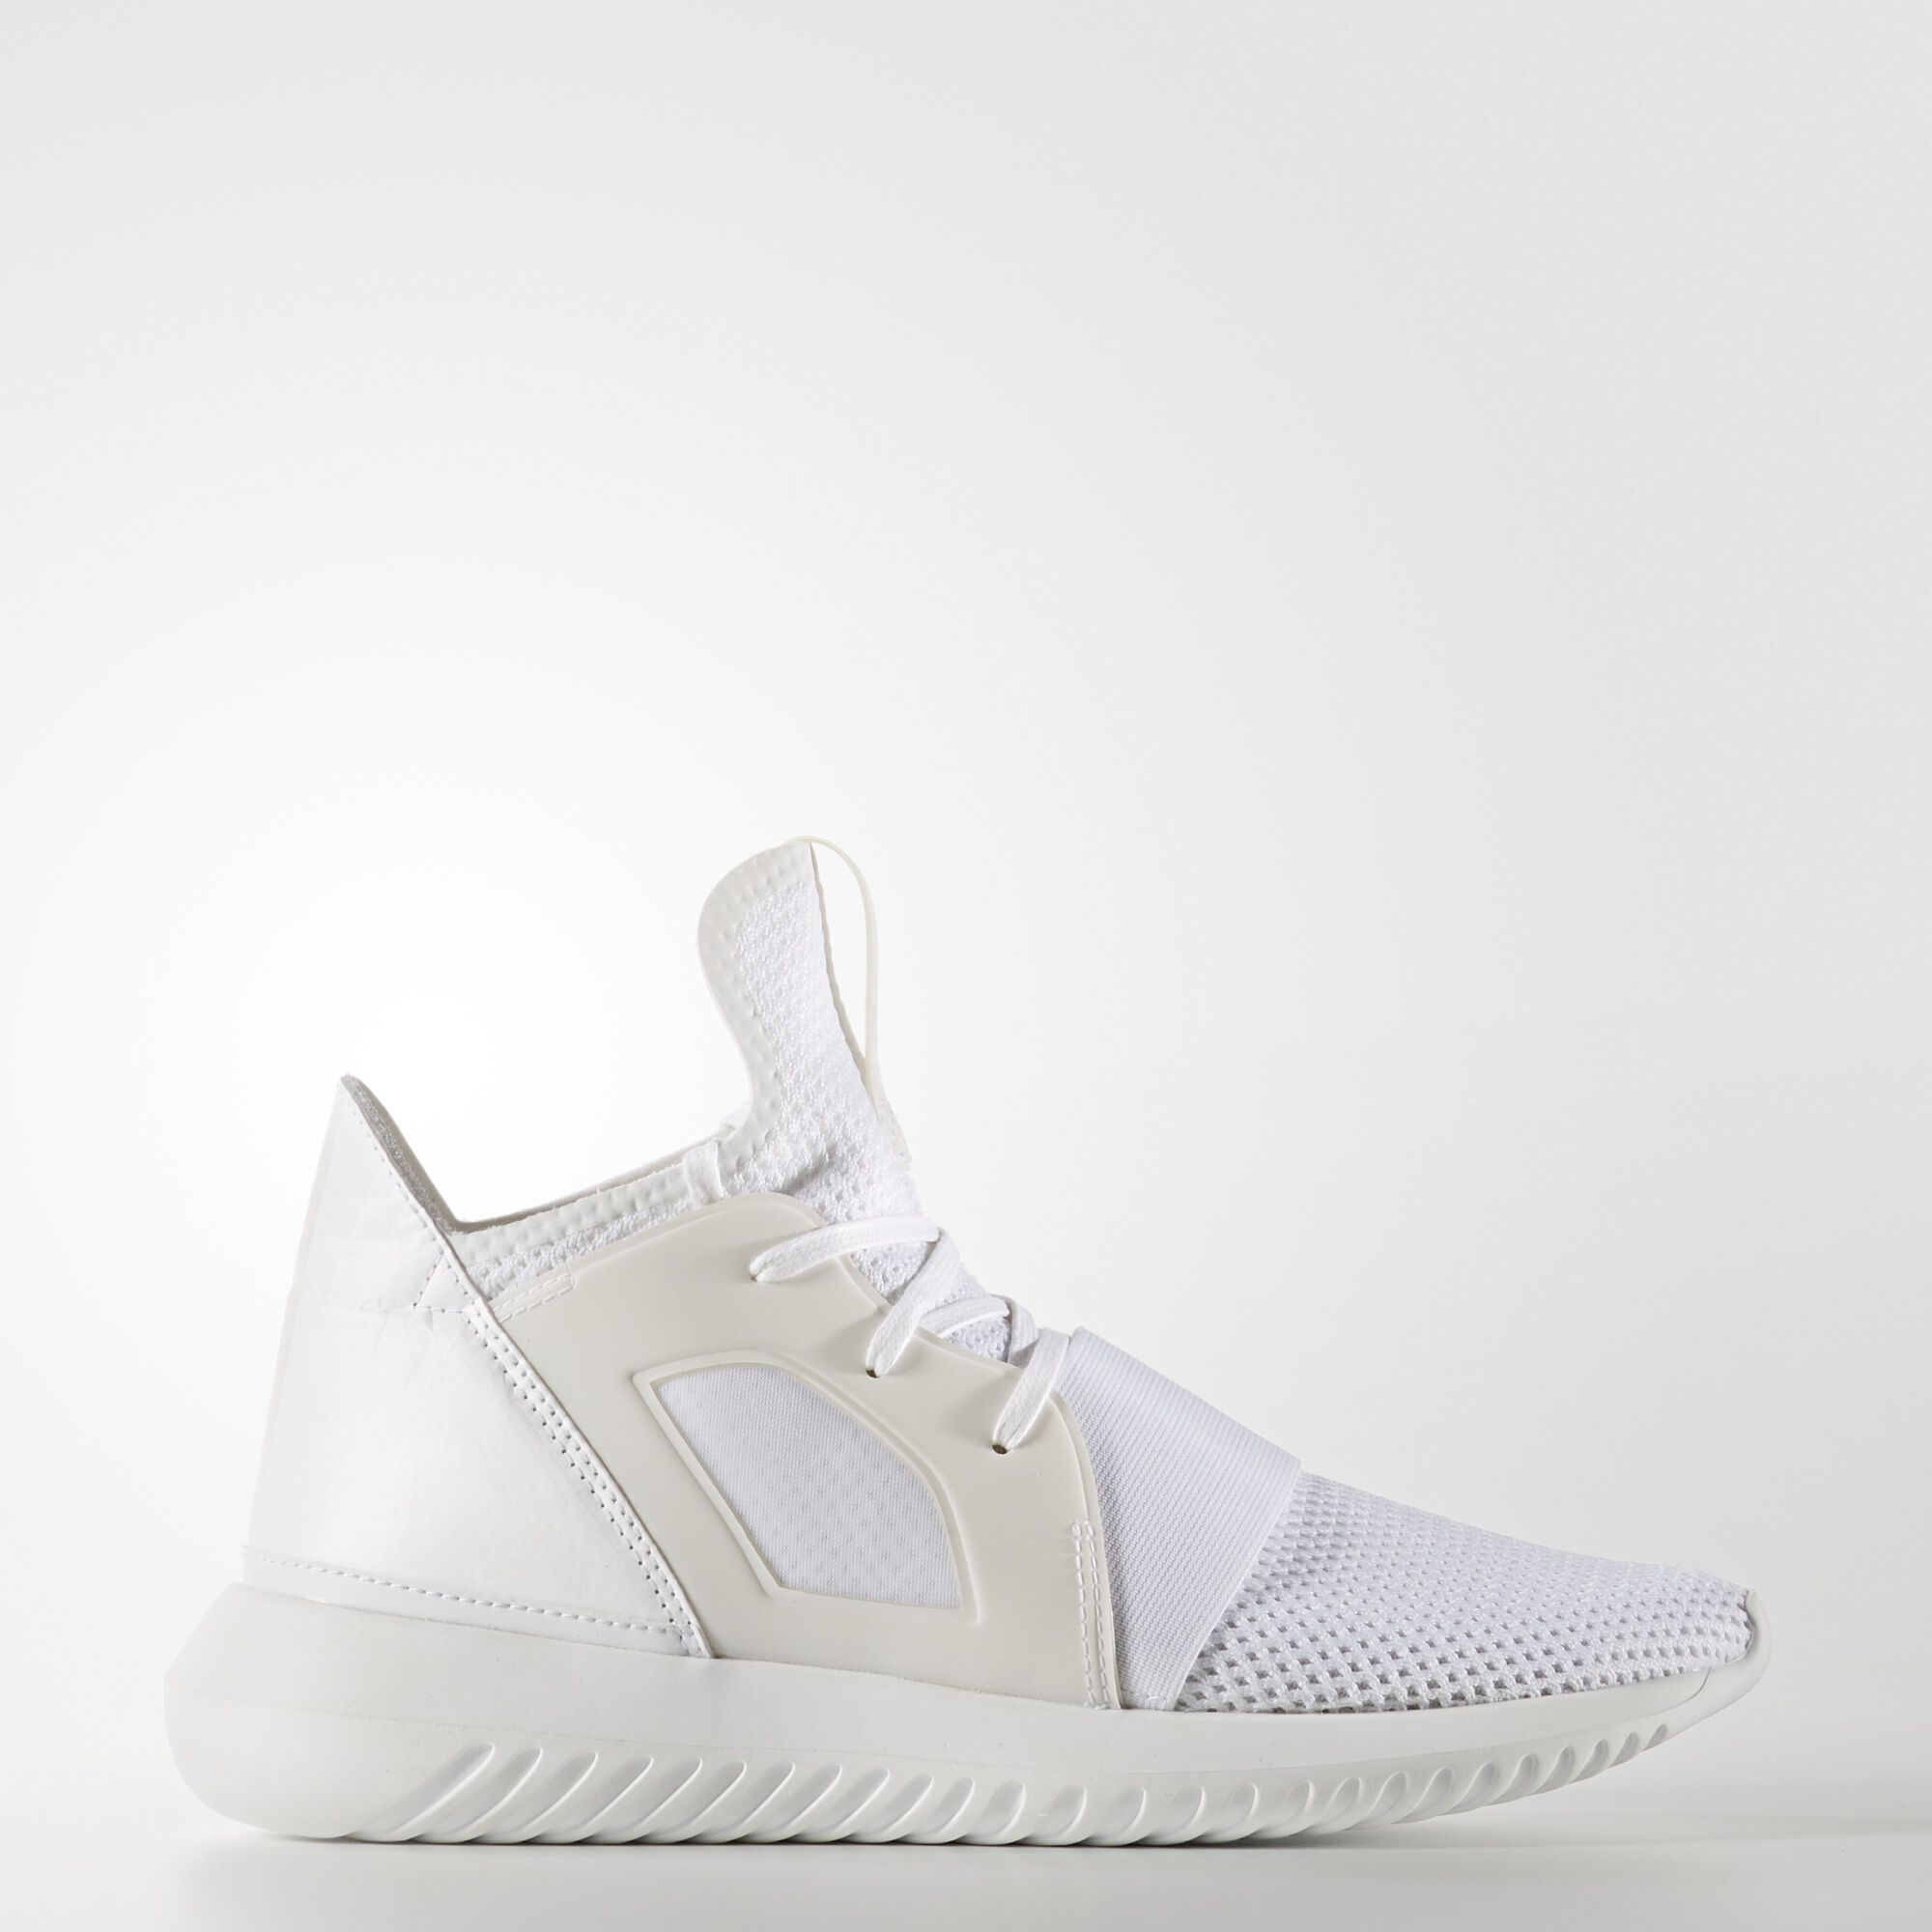 Adidas Shoes Tubular White